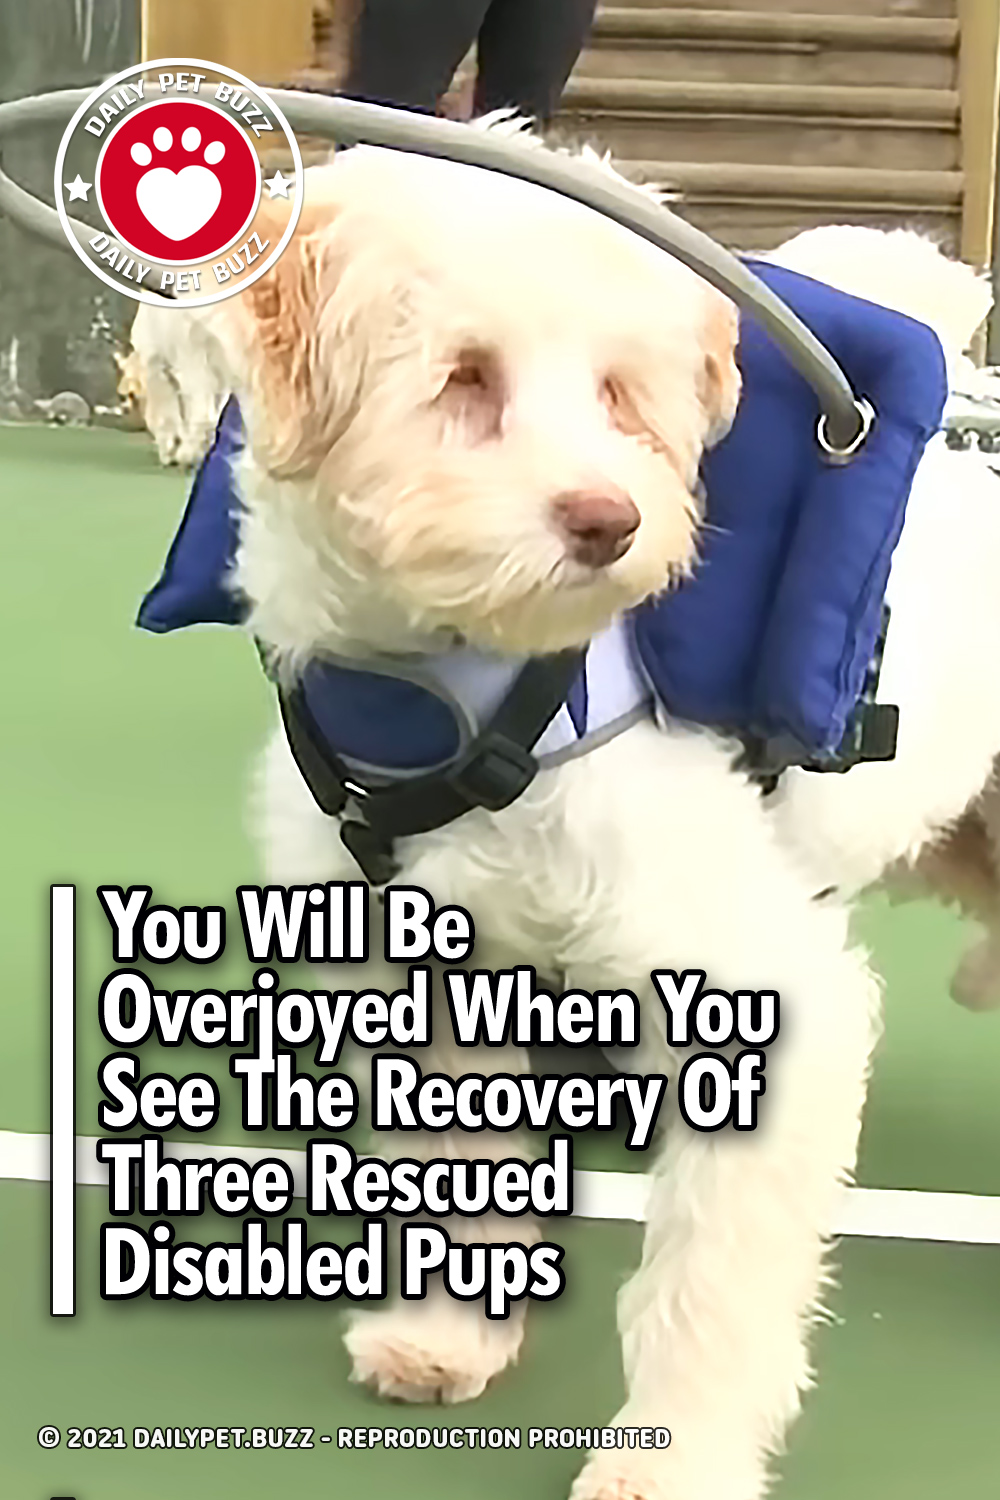 You Will Be Overjoyed When You See The Recovery Of Three Rescued Disabled Pups